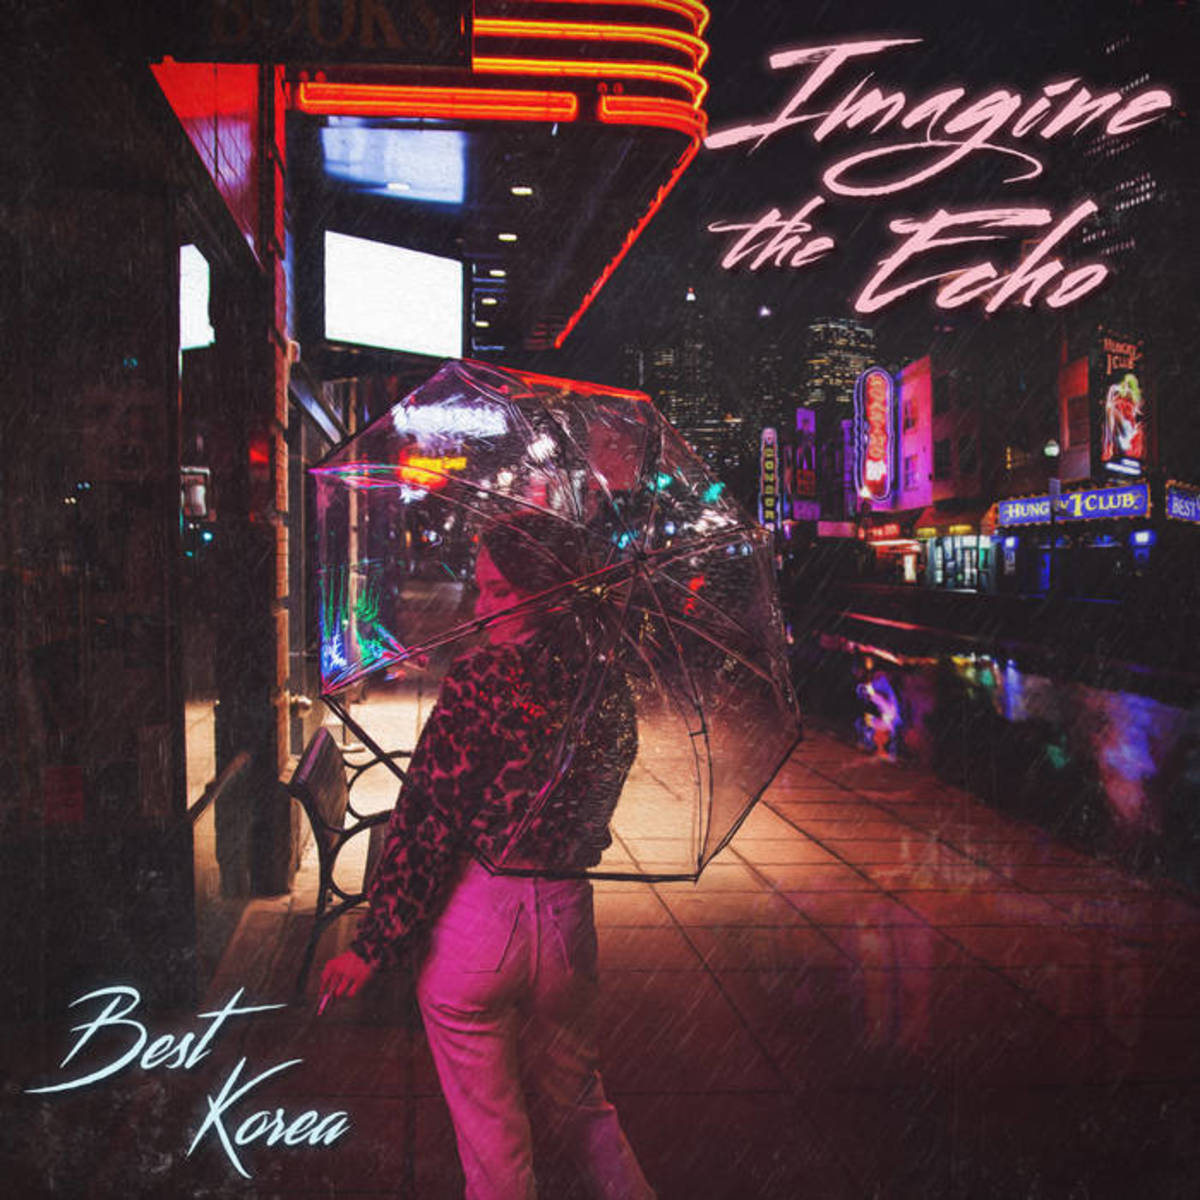 """Synthwave Single Review: Best Korea, """"Imagine the Echo"""""""